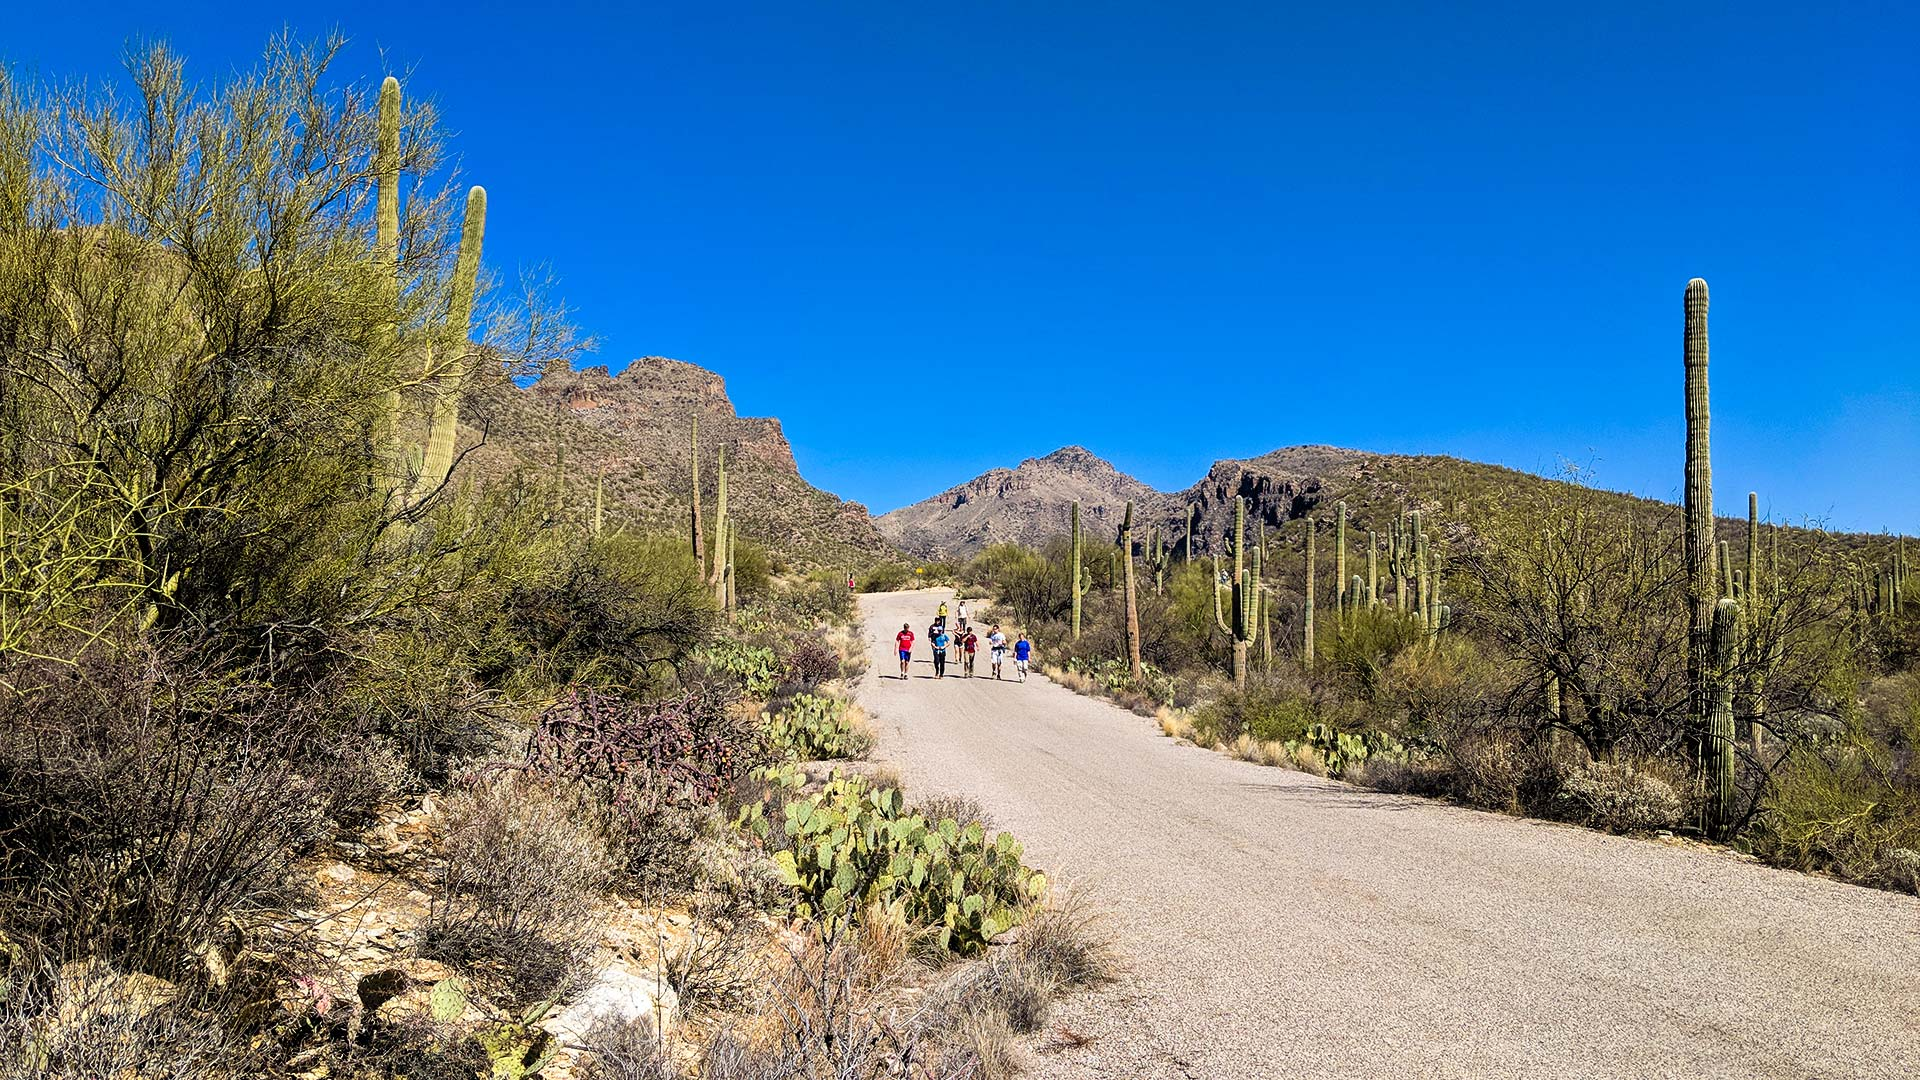 Walking down the road near the Bear Canyon Trail in the Sabino Canyon Recreation Area, February 2018.